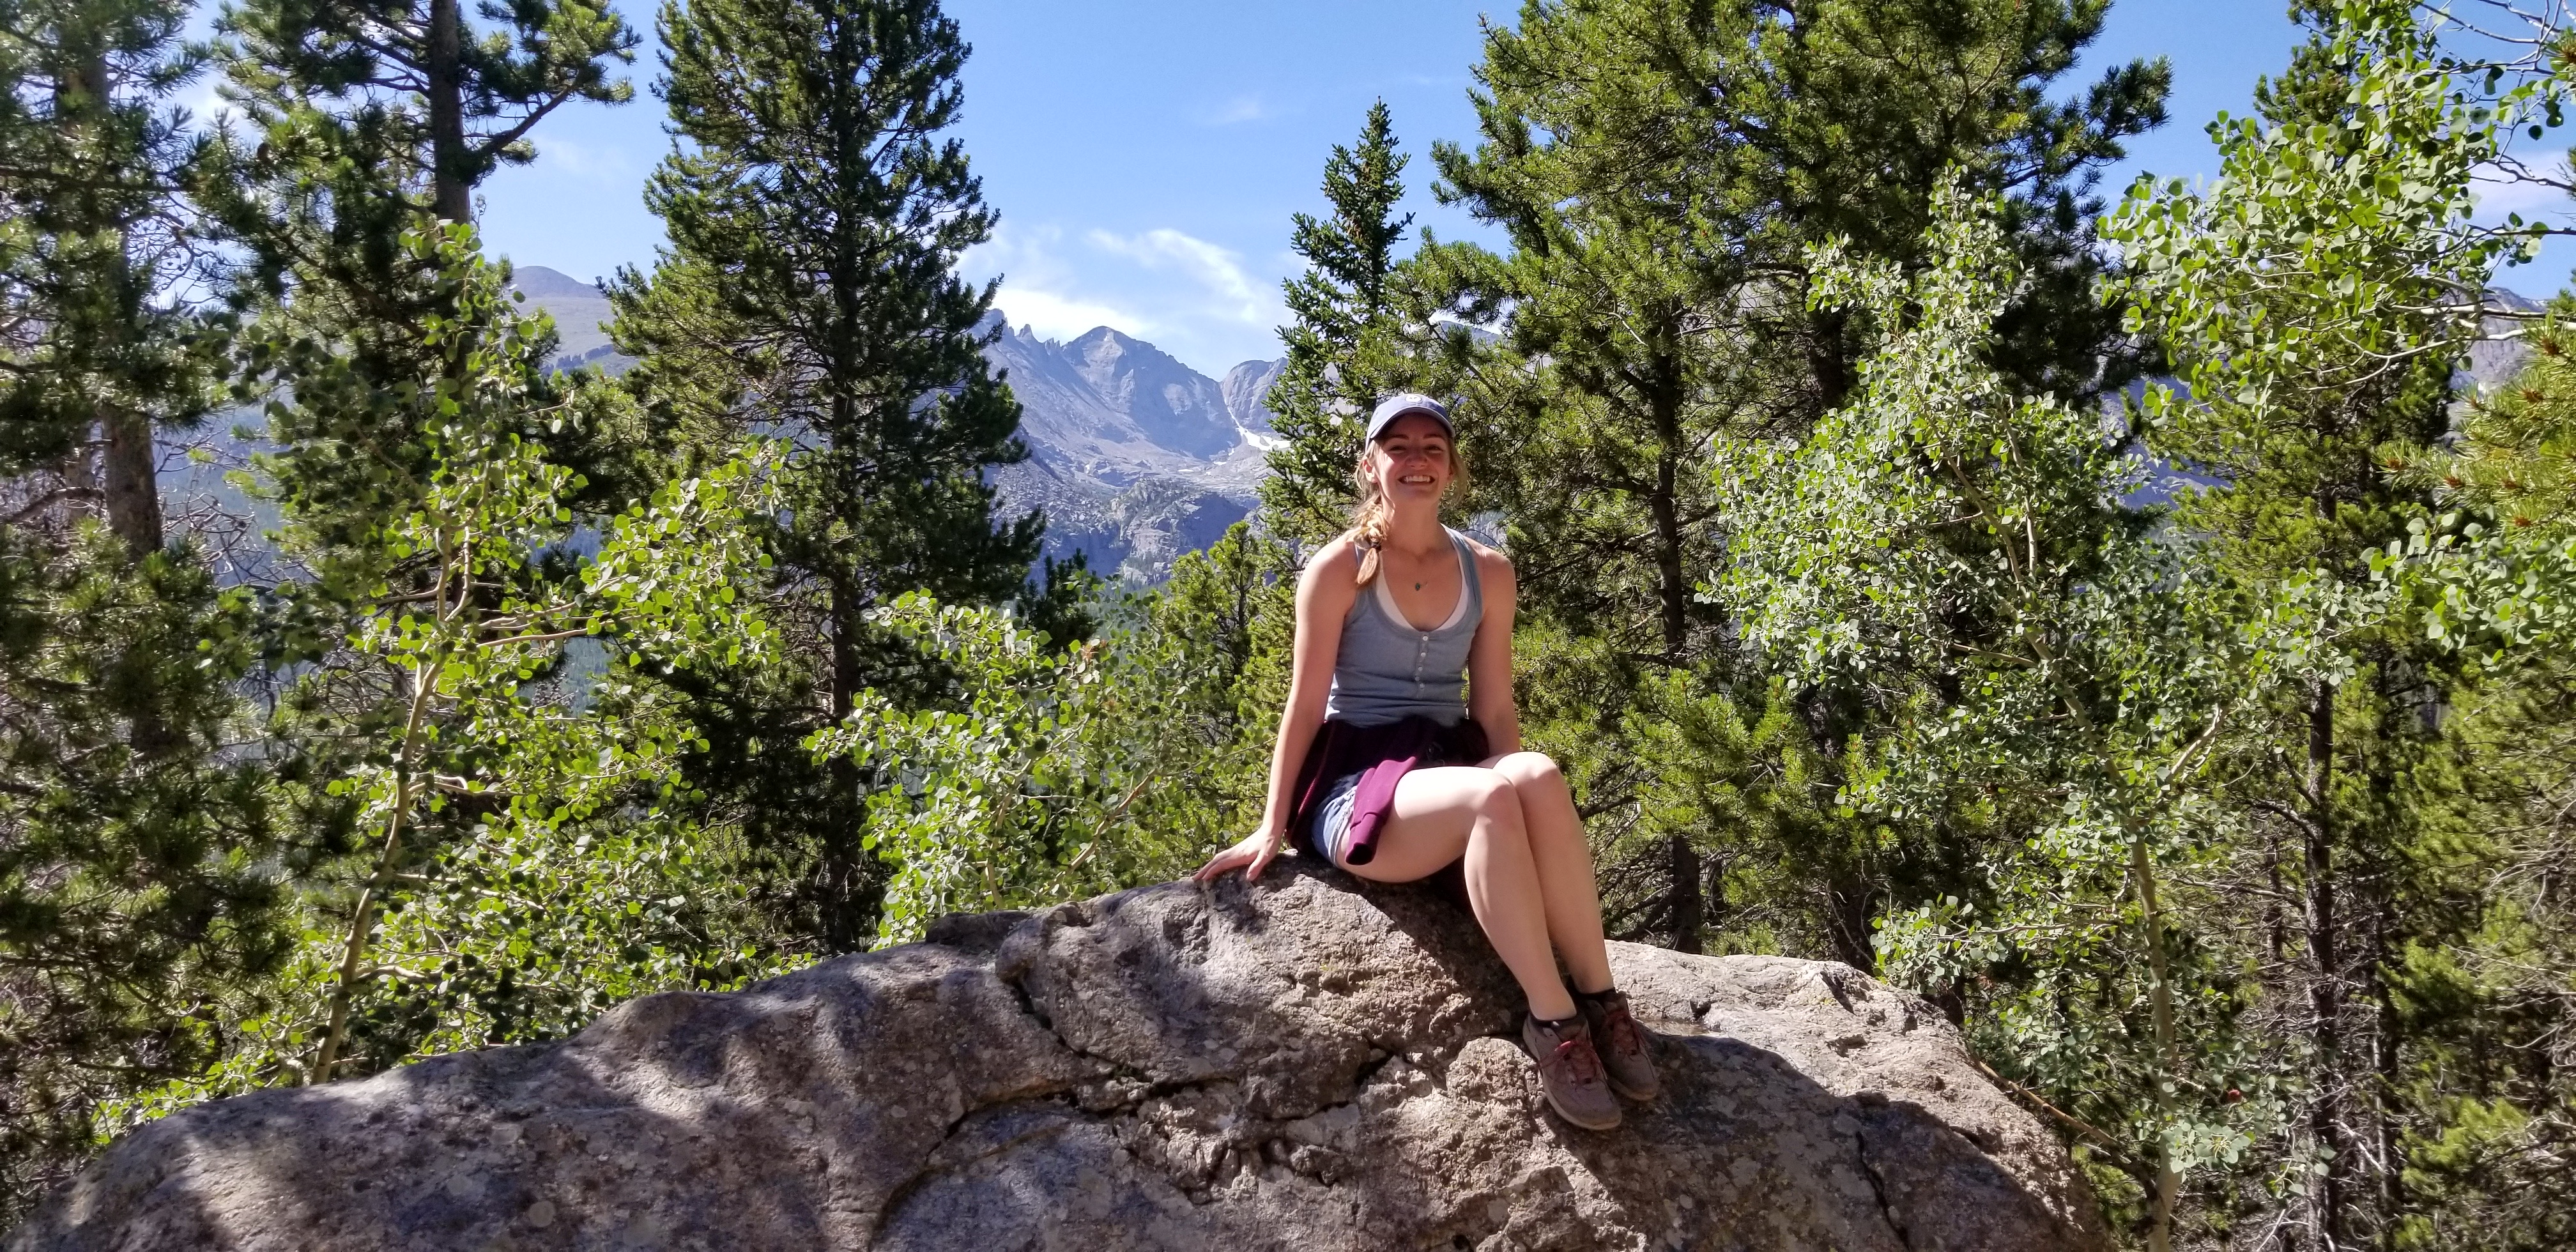 Julie at Rocky Mountain National Park